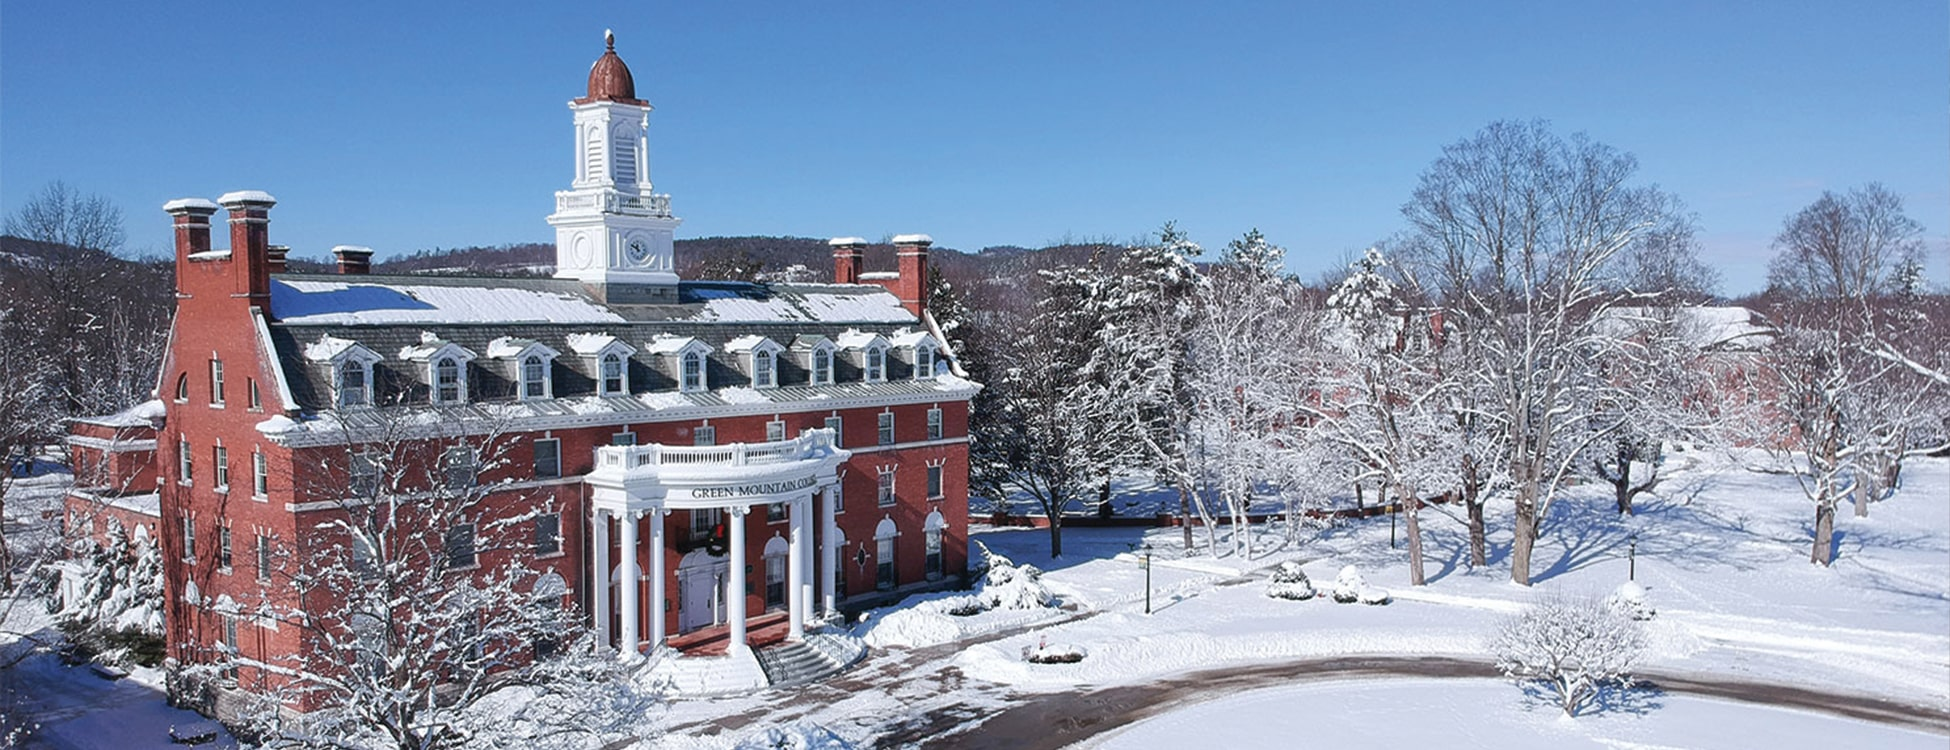 Green Mountain College, snow, winter